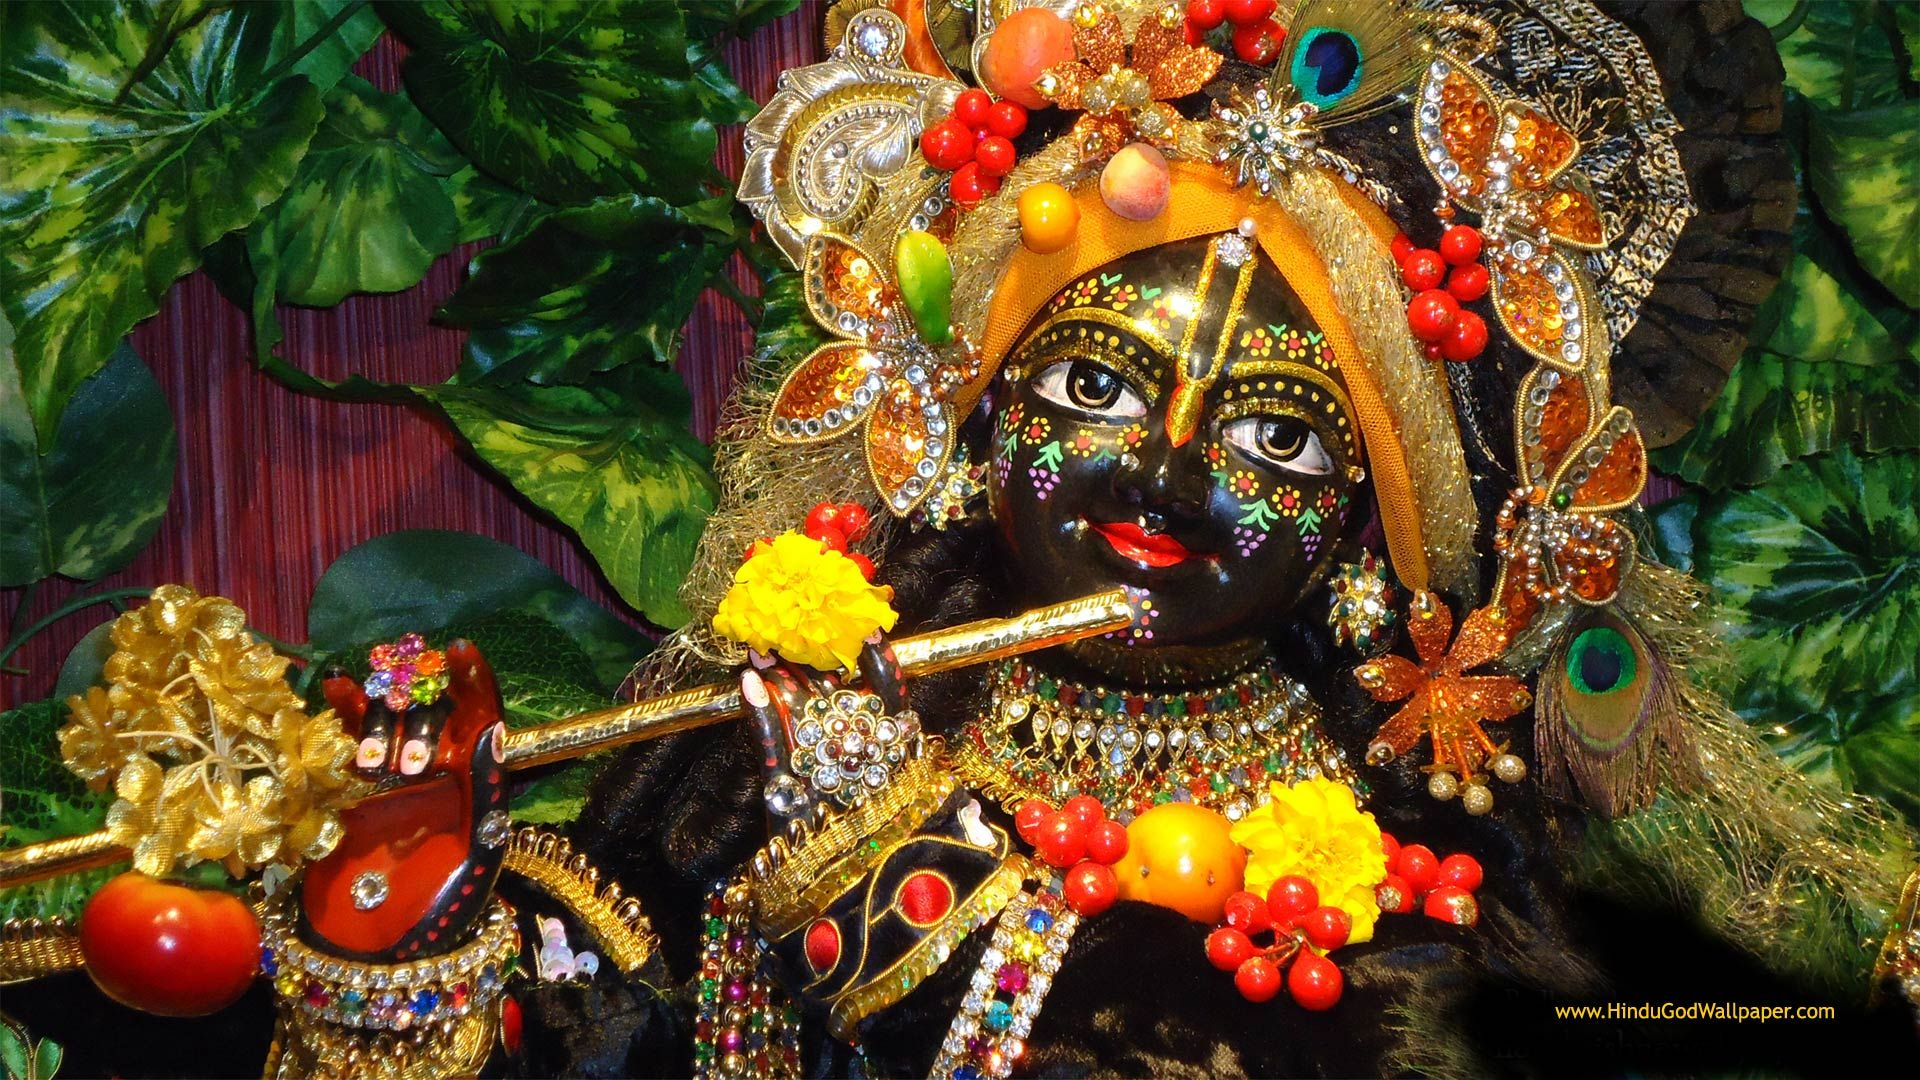 Iskcon Krishna Hd Wallpapers Full Size Free Download Krishna Wallpaper Lord Krishna Wallpapers Iskcon Krishna